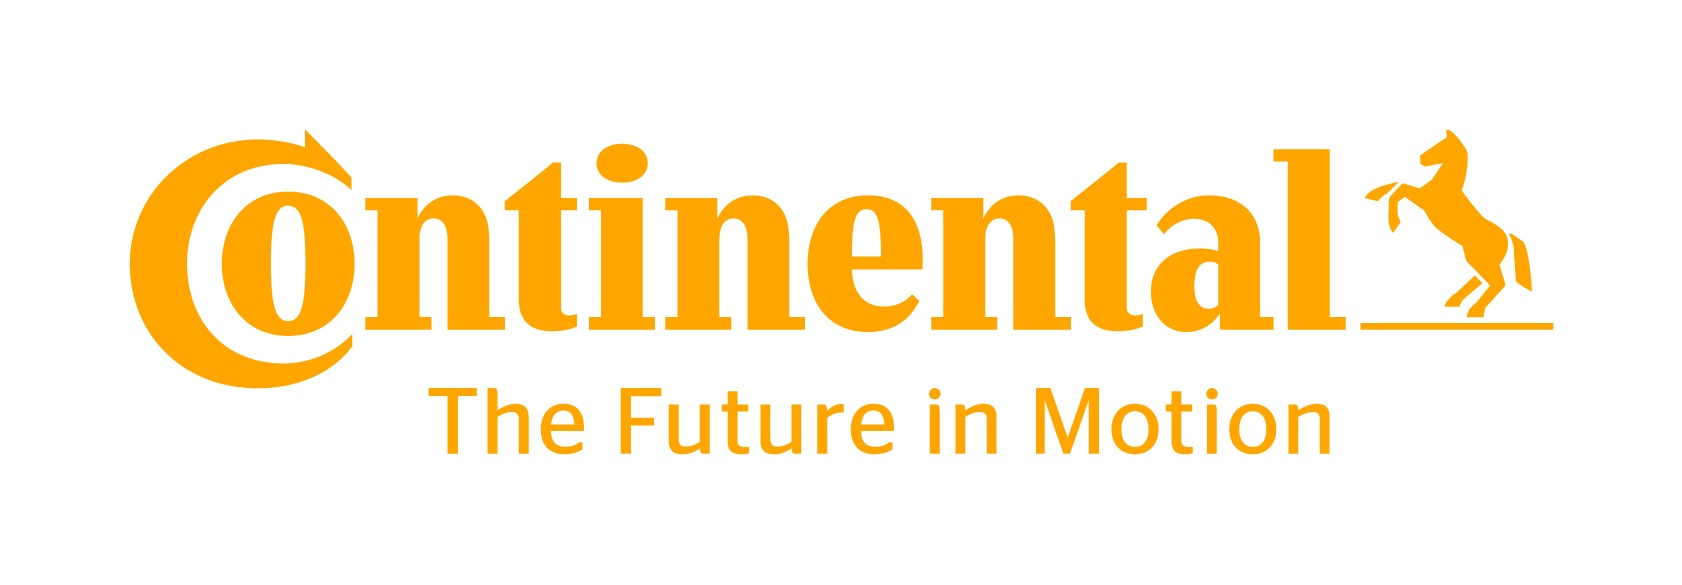 https://www.oms-is.eu/wp-content/uploads/2018/09/continental-logo.jpg